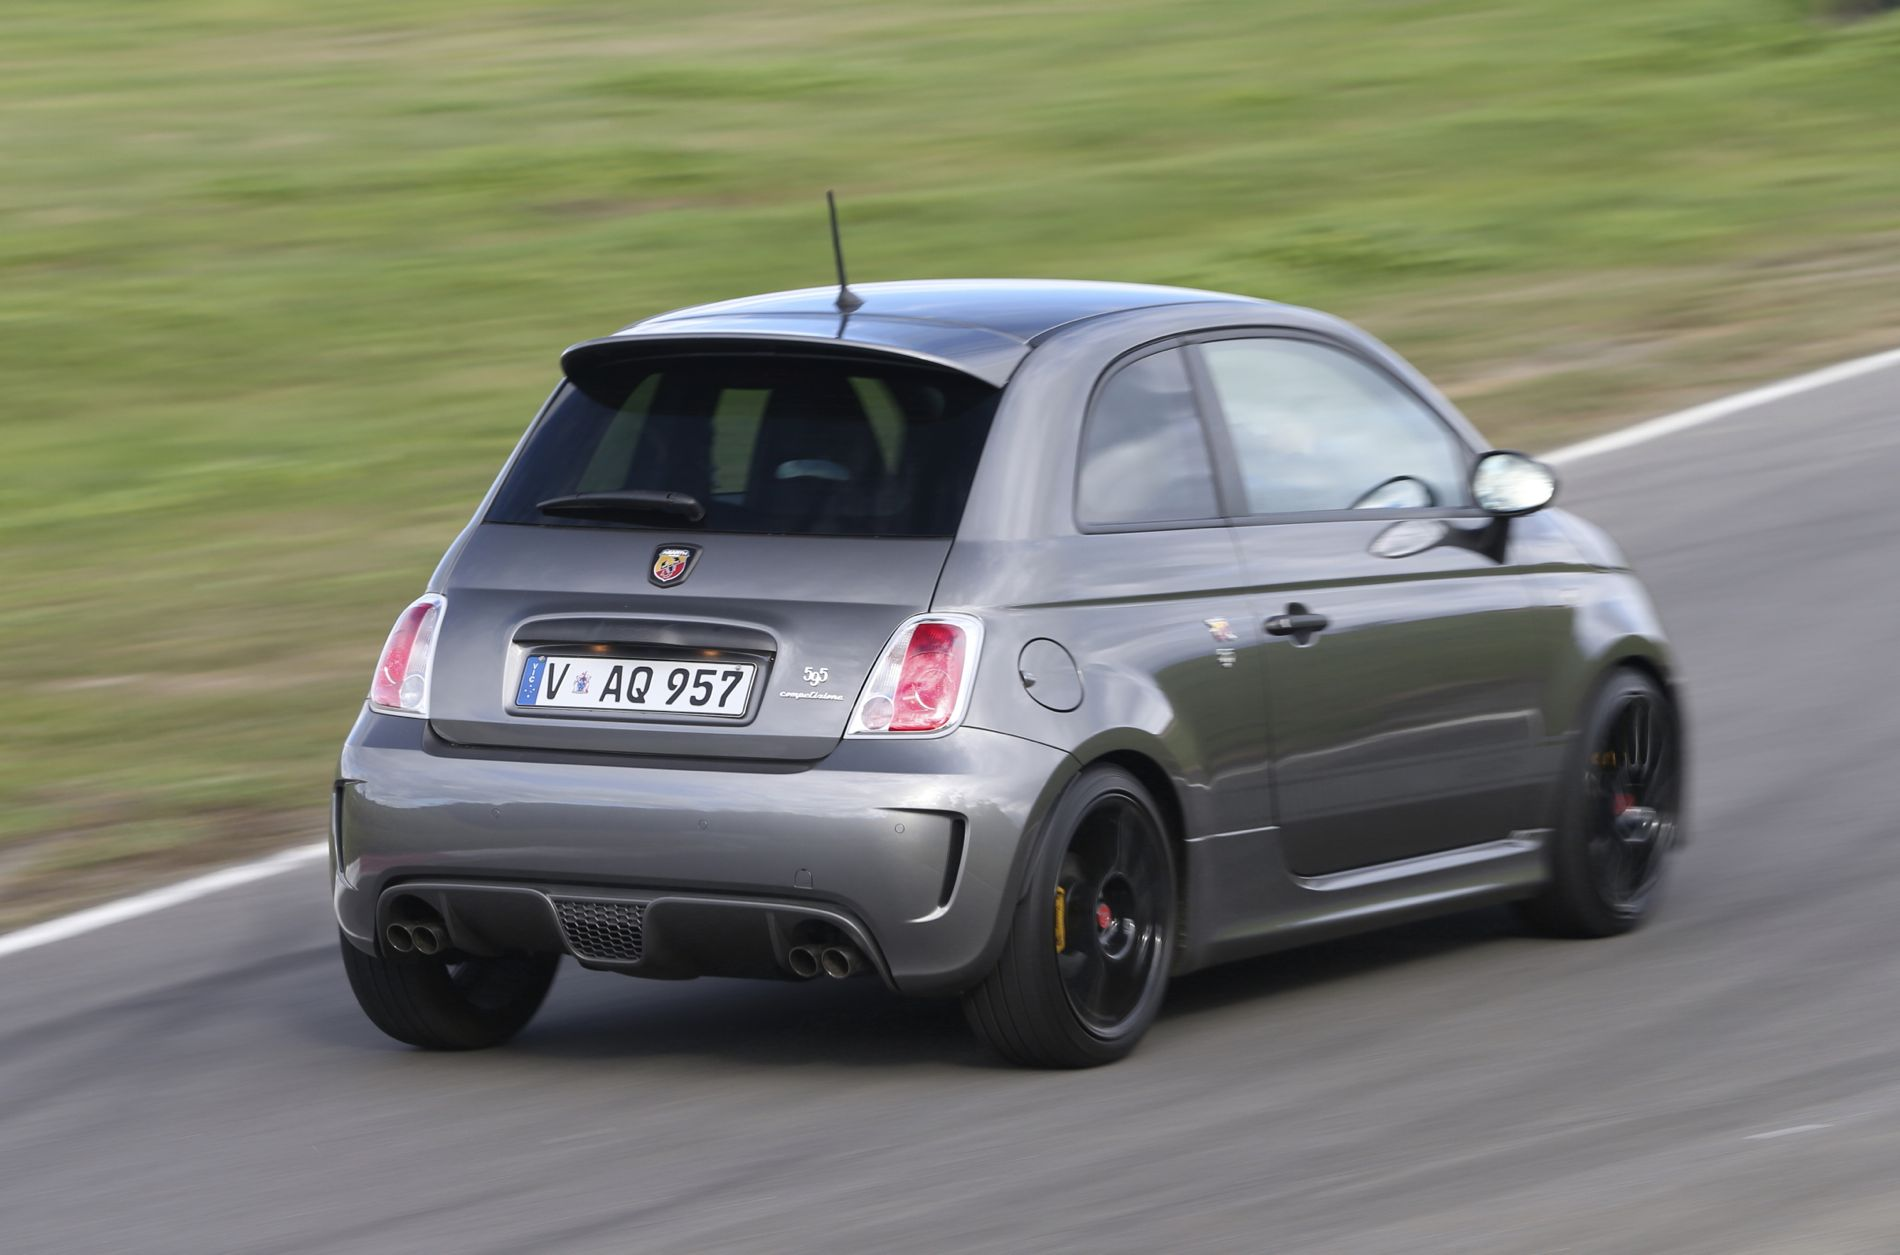 2015 fiat 500 review photos caradvice. Black Bedroom Furniture Sets. Home Design Ideas